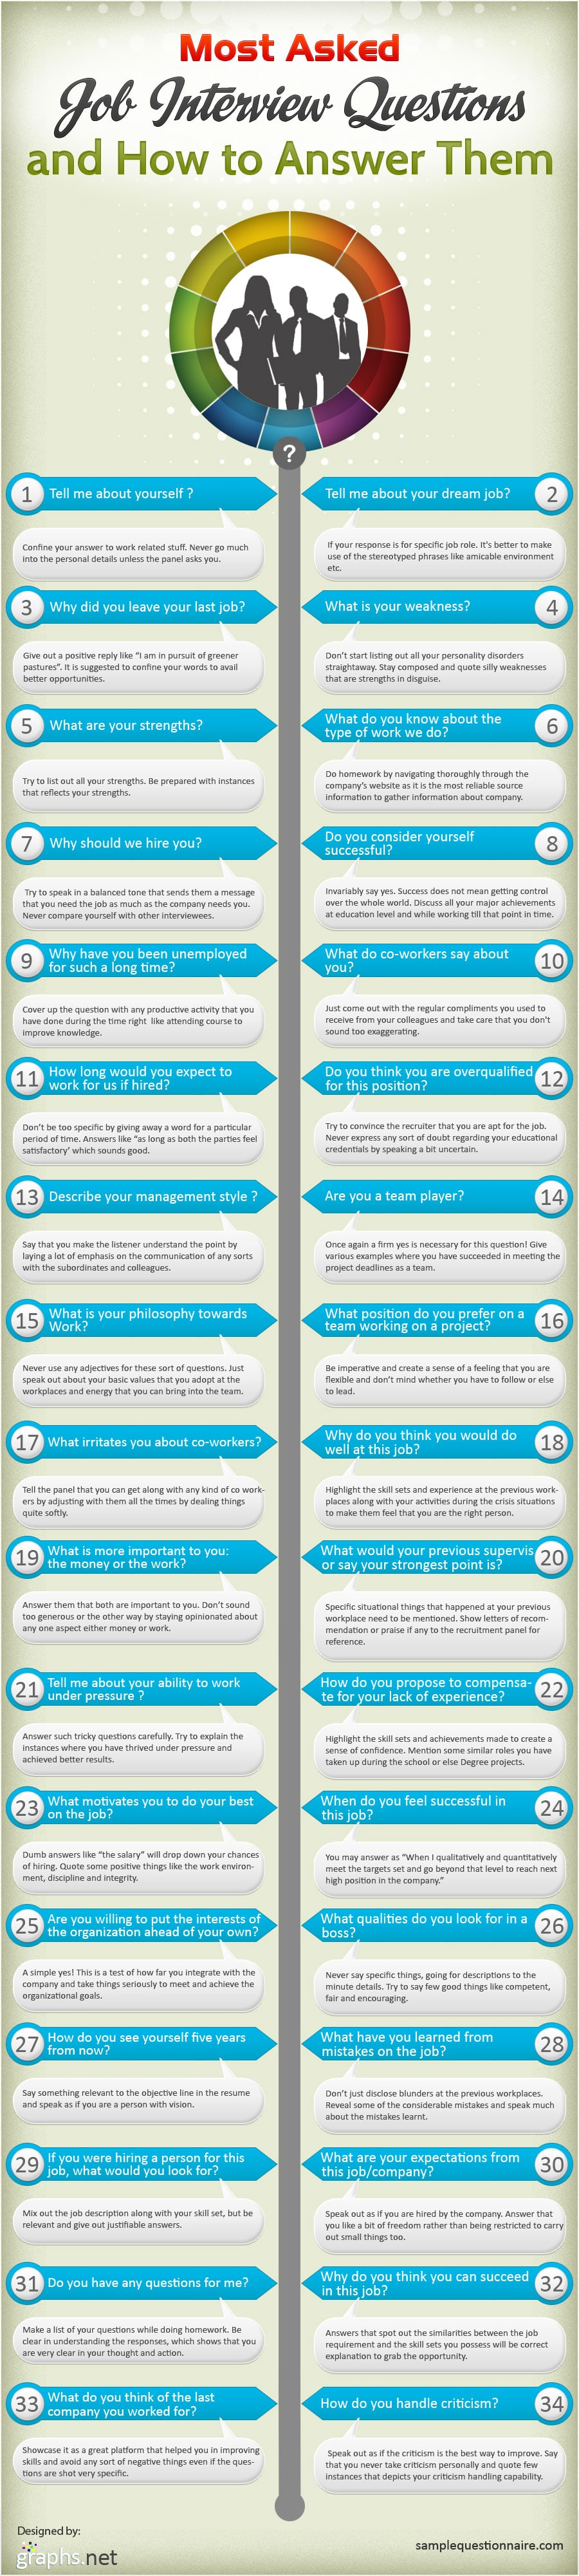 most-asked-job-interview-questions